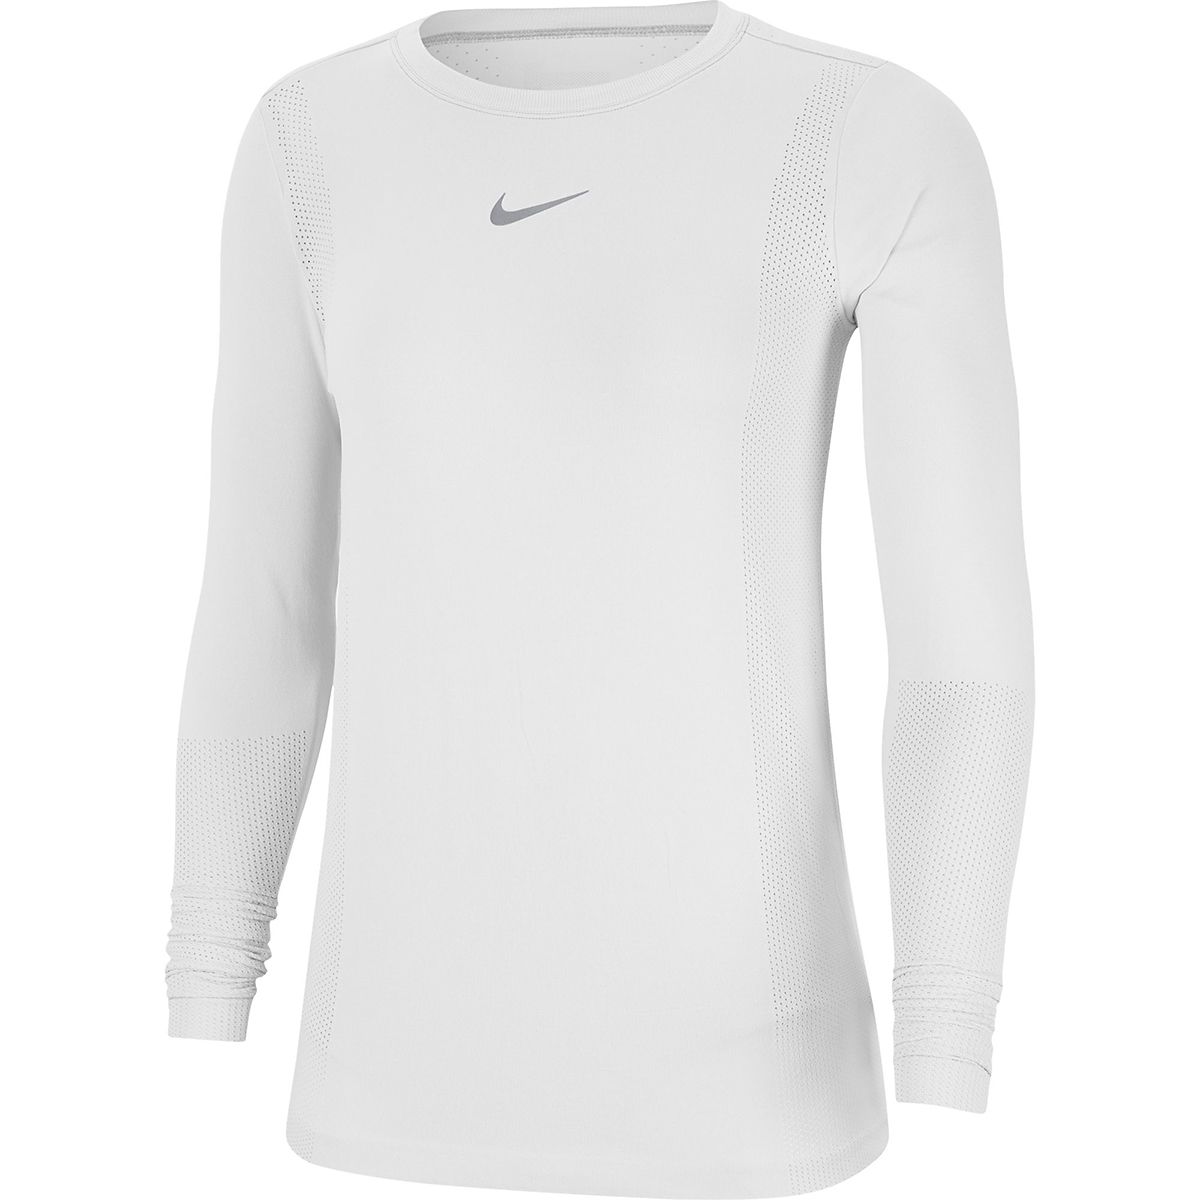 Women's Nike Infinite Running Top Long Sleeve - Color: White - Size: XS, White, large, image 3